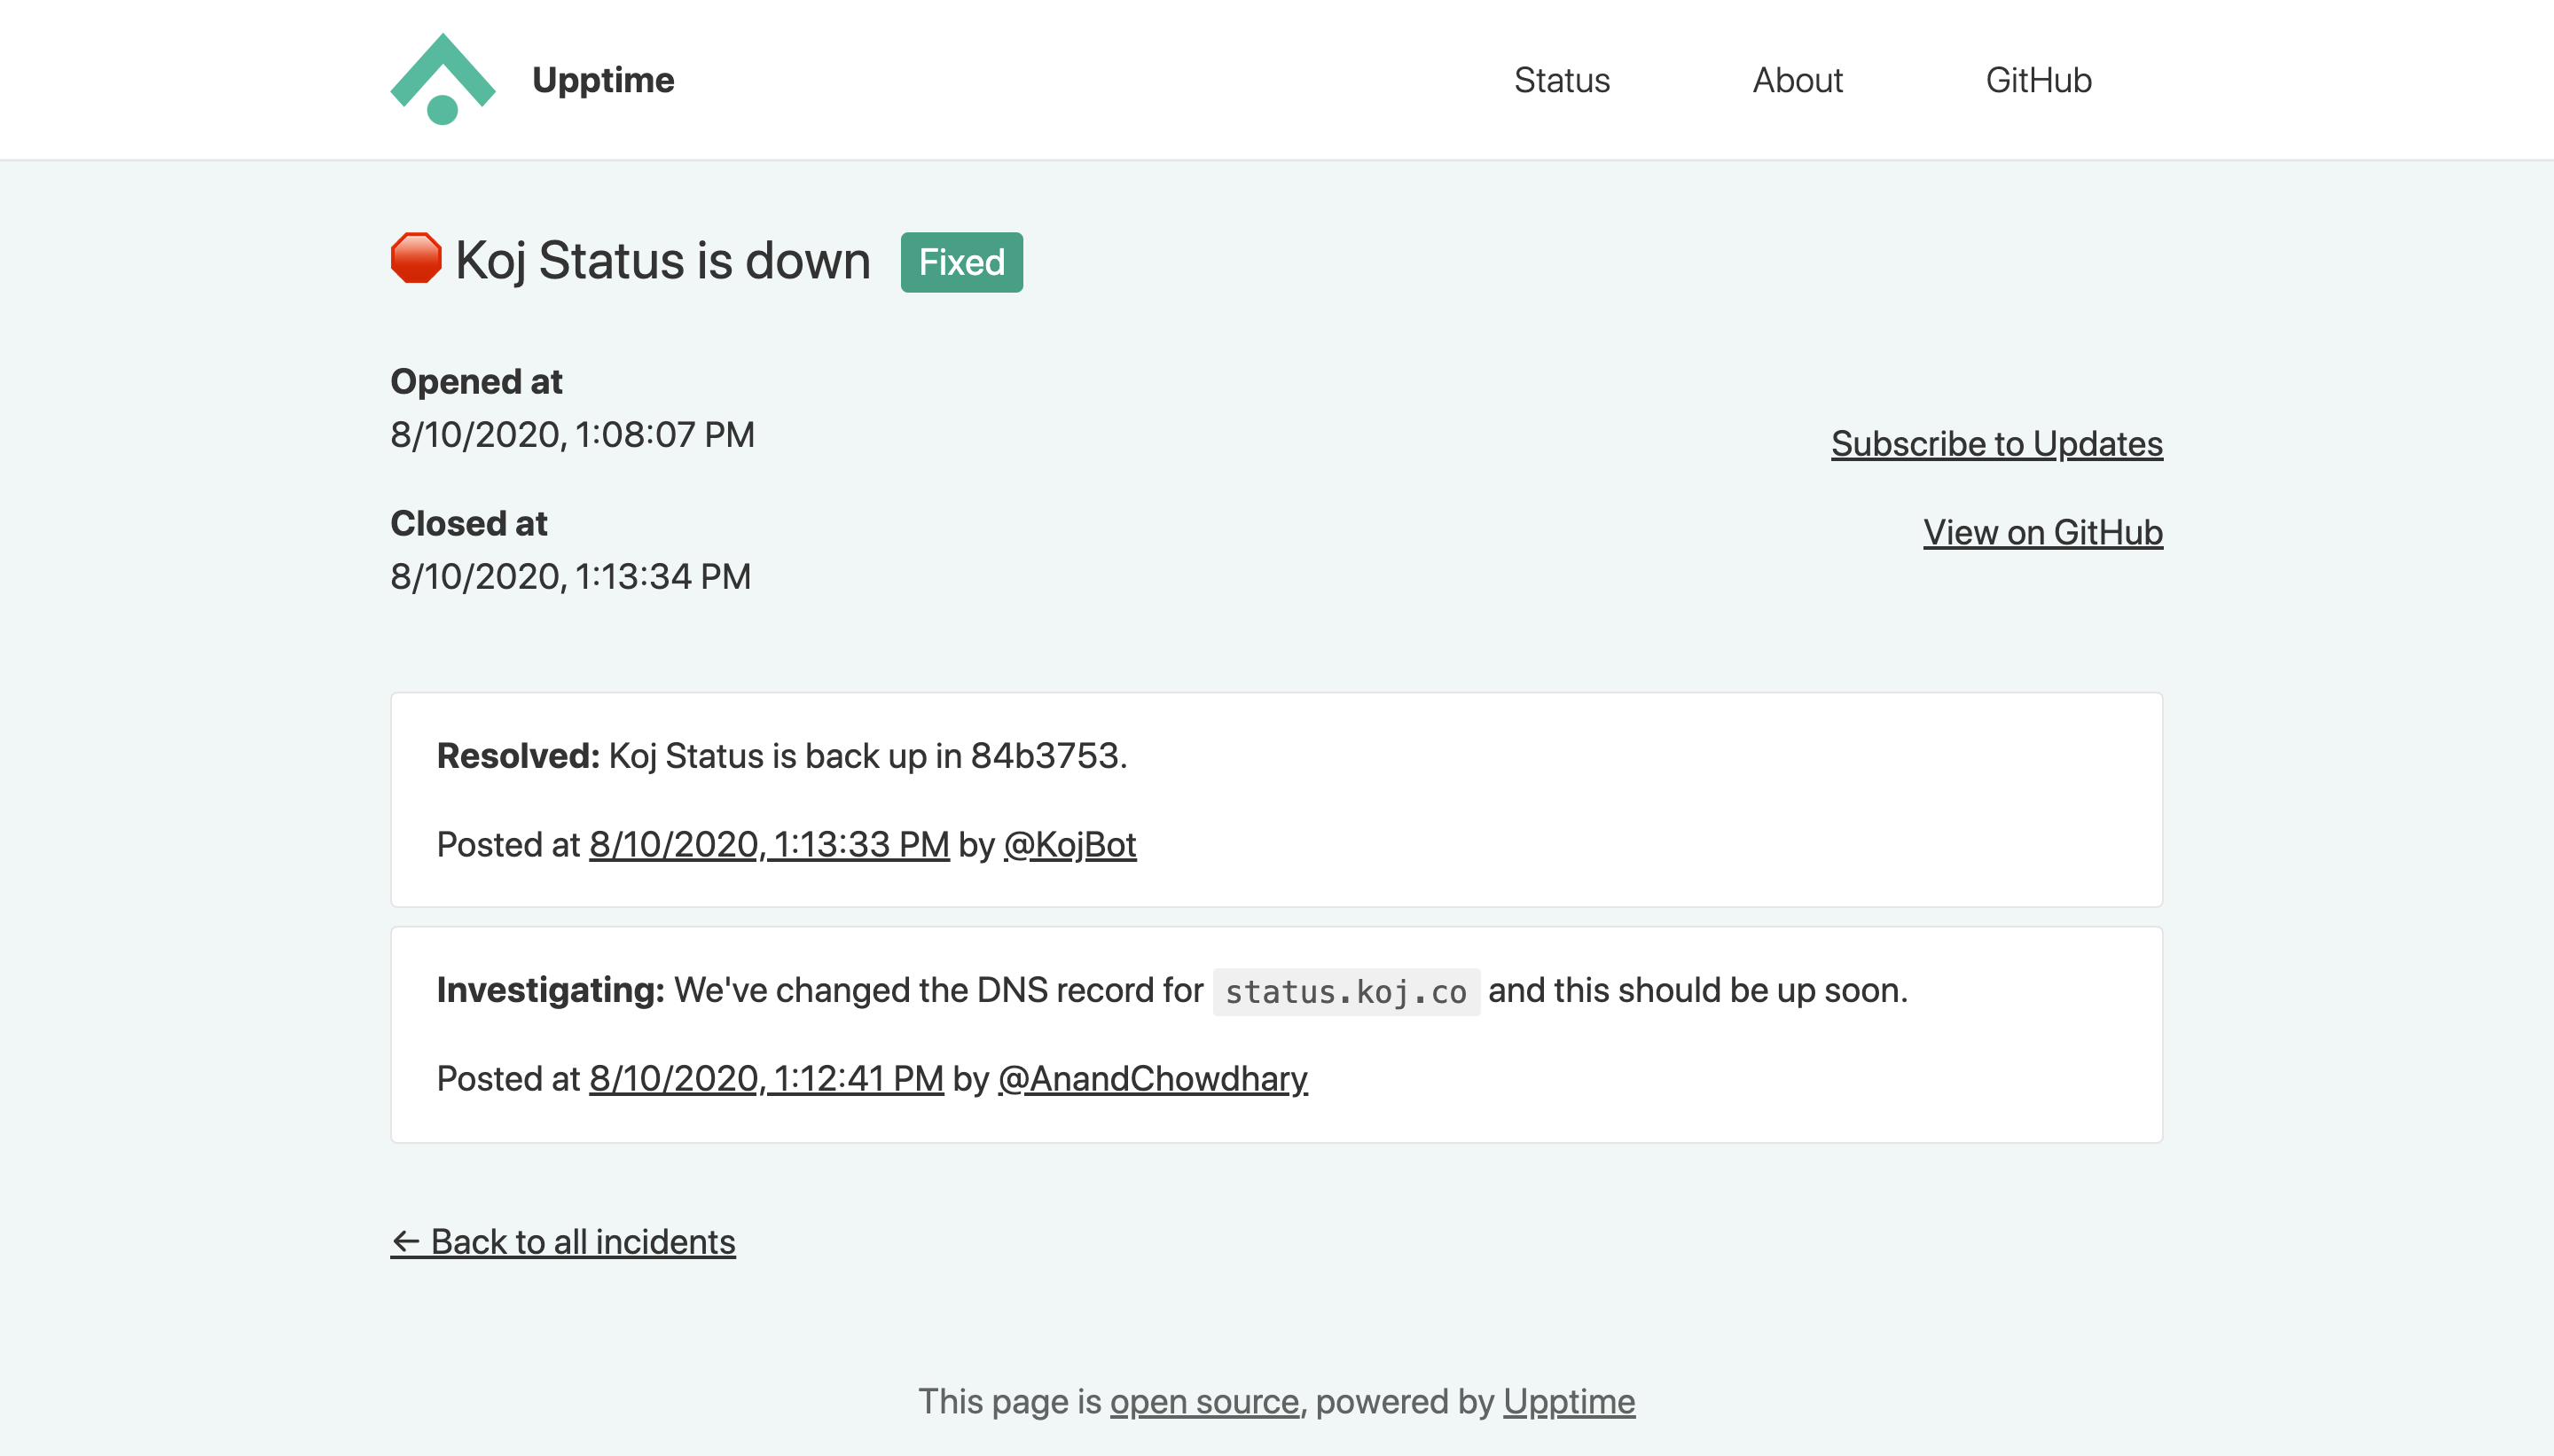 Screenshot of incident page